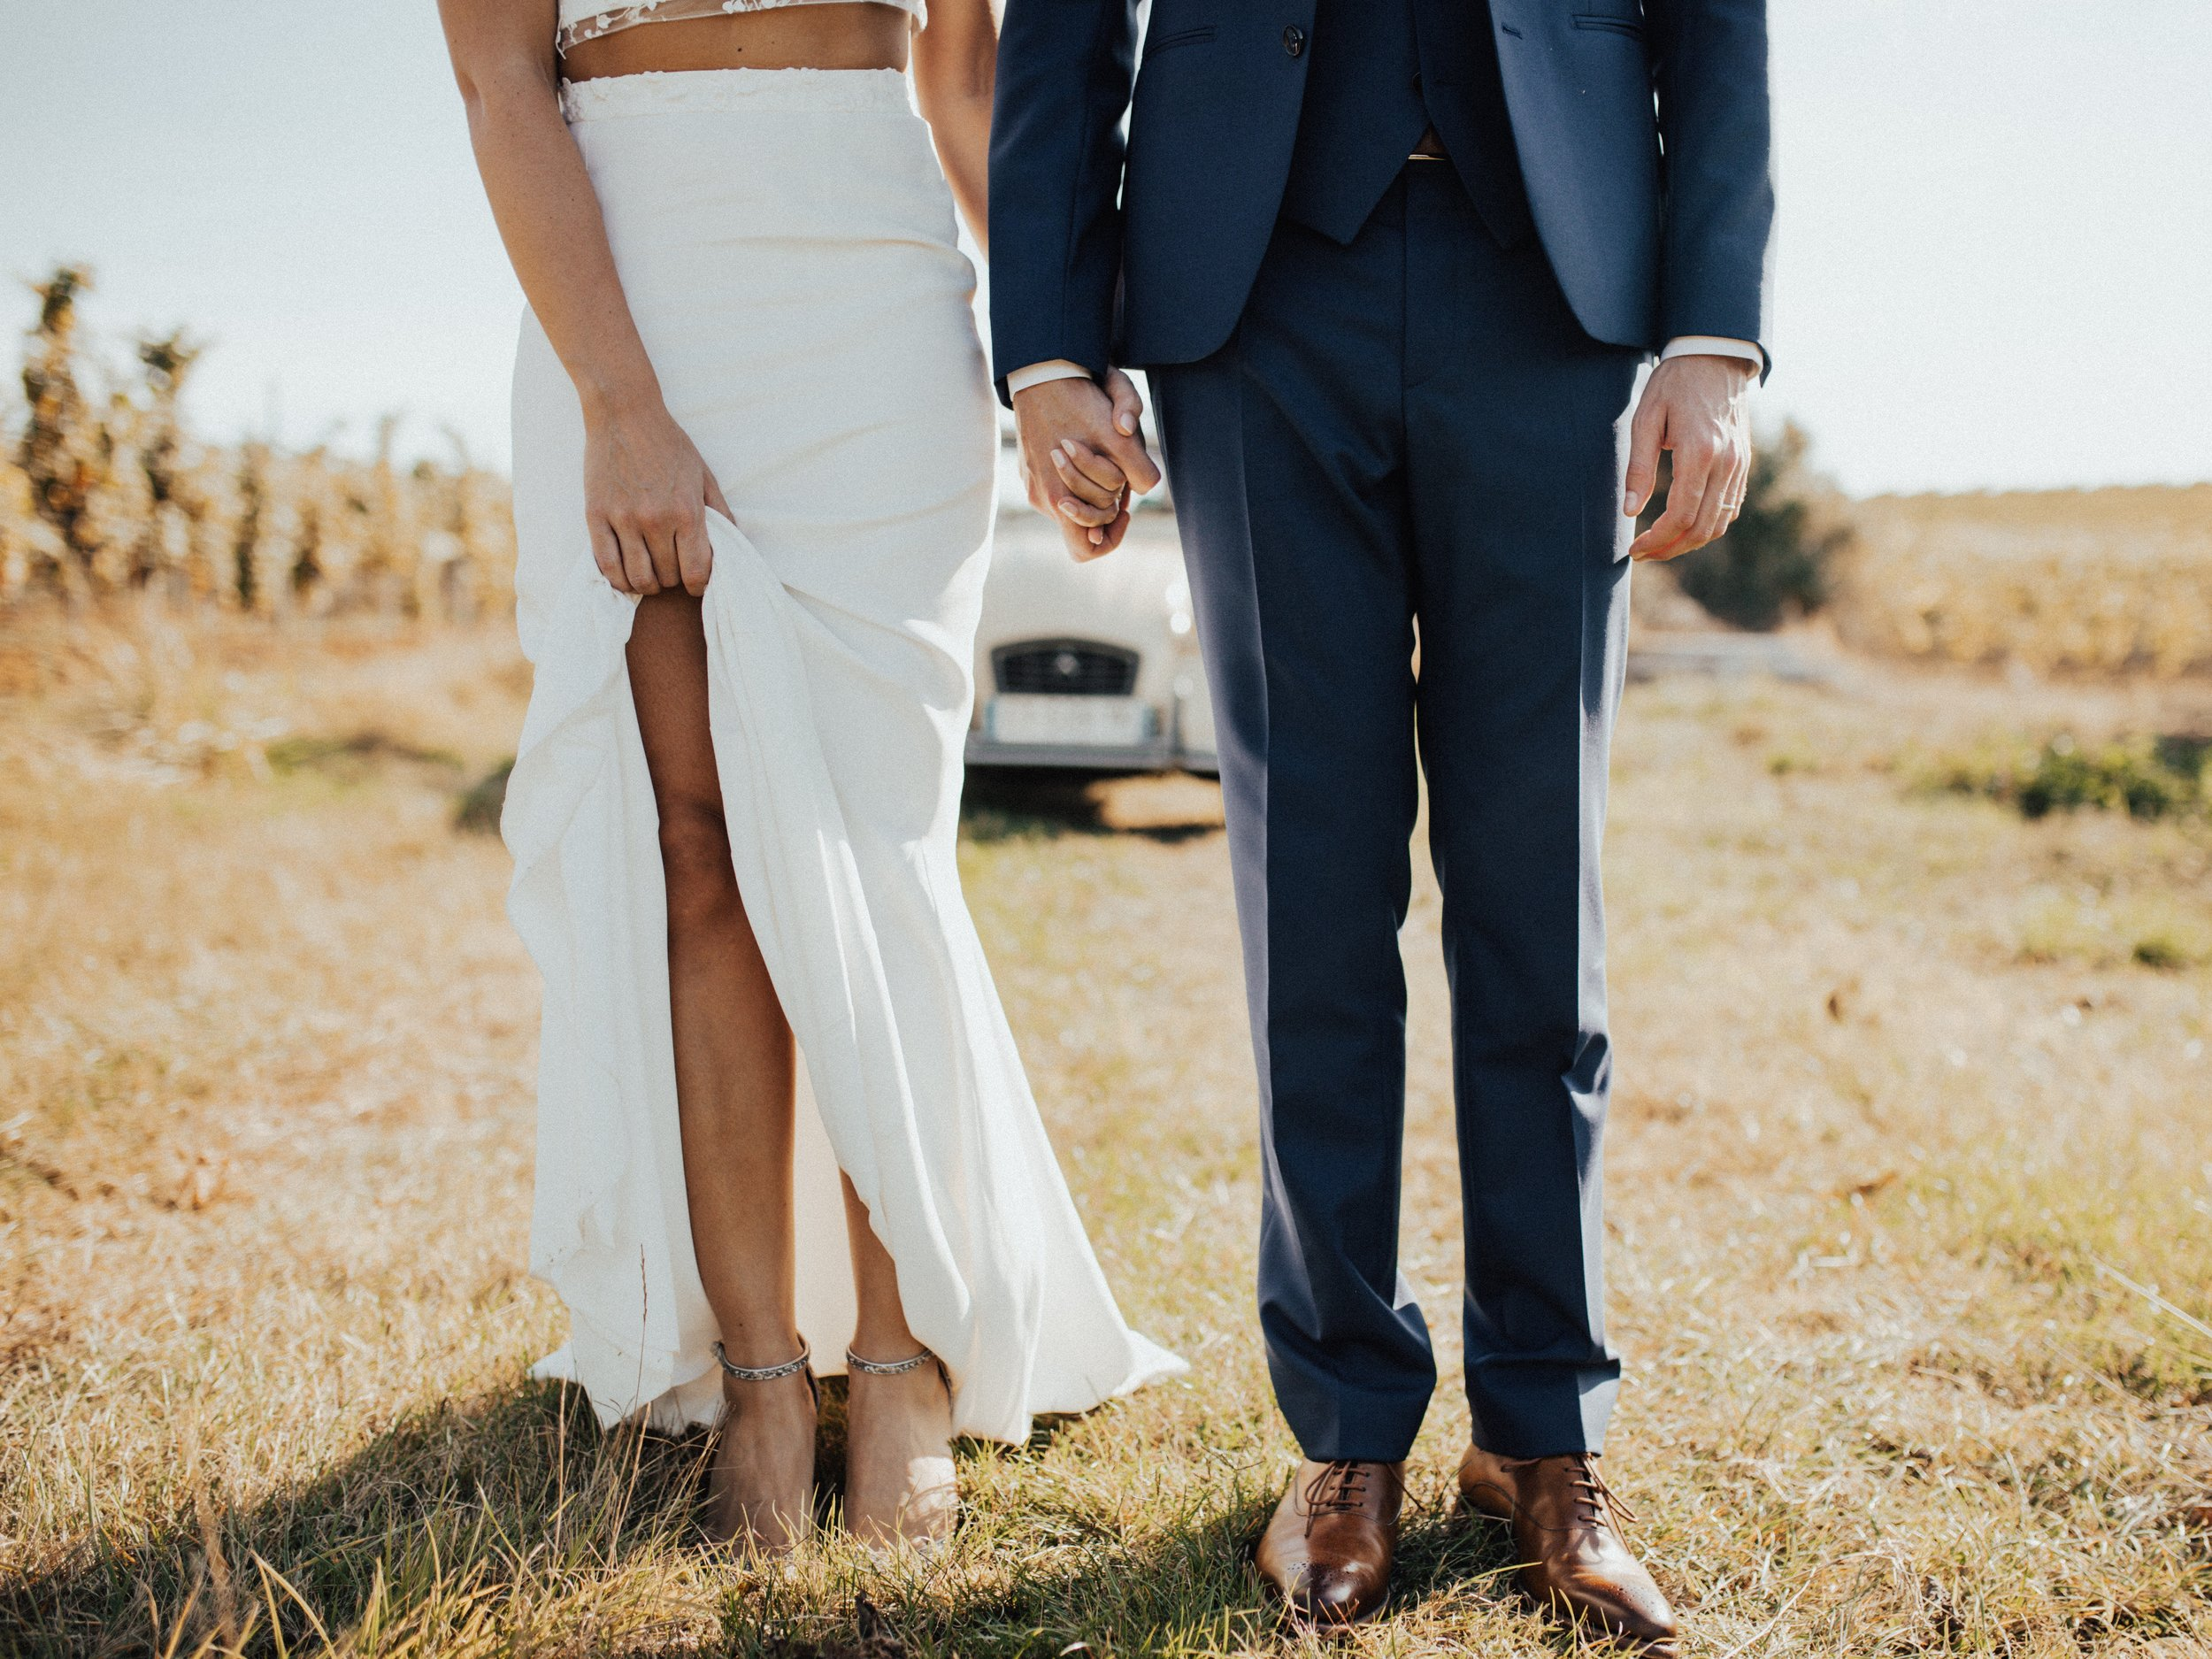 WEDDINGS - We adore capturing a good love story -- We want to help tell yours! Our style can be anywhere from traditional to eclectic. YOU set the vibe and we will follow!